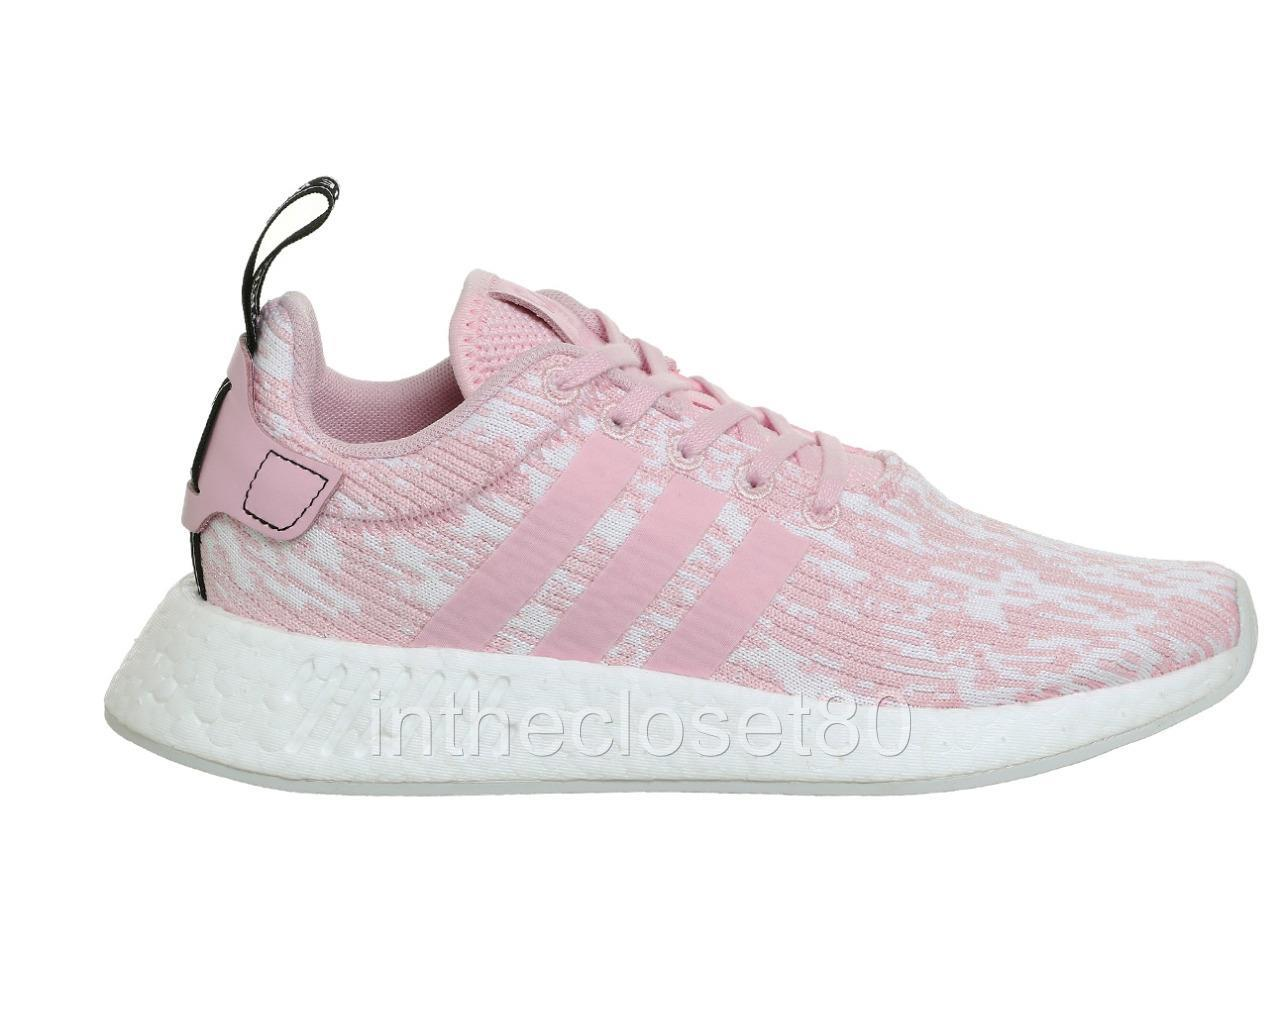 Adidas NMD R2 Wonder Pink Black PrimeKnit Womens Boost Trainers BY9315